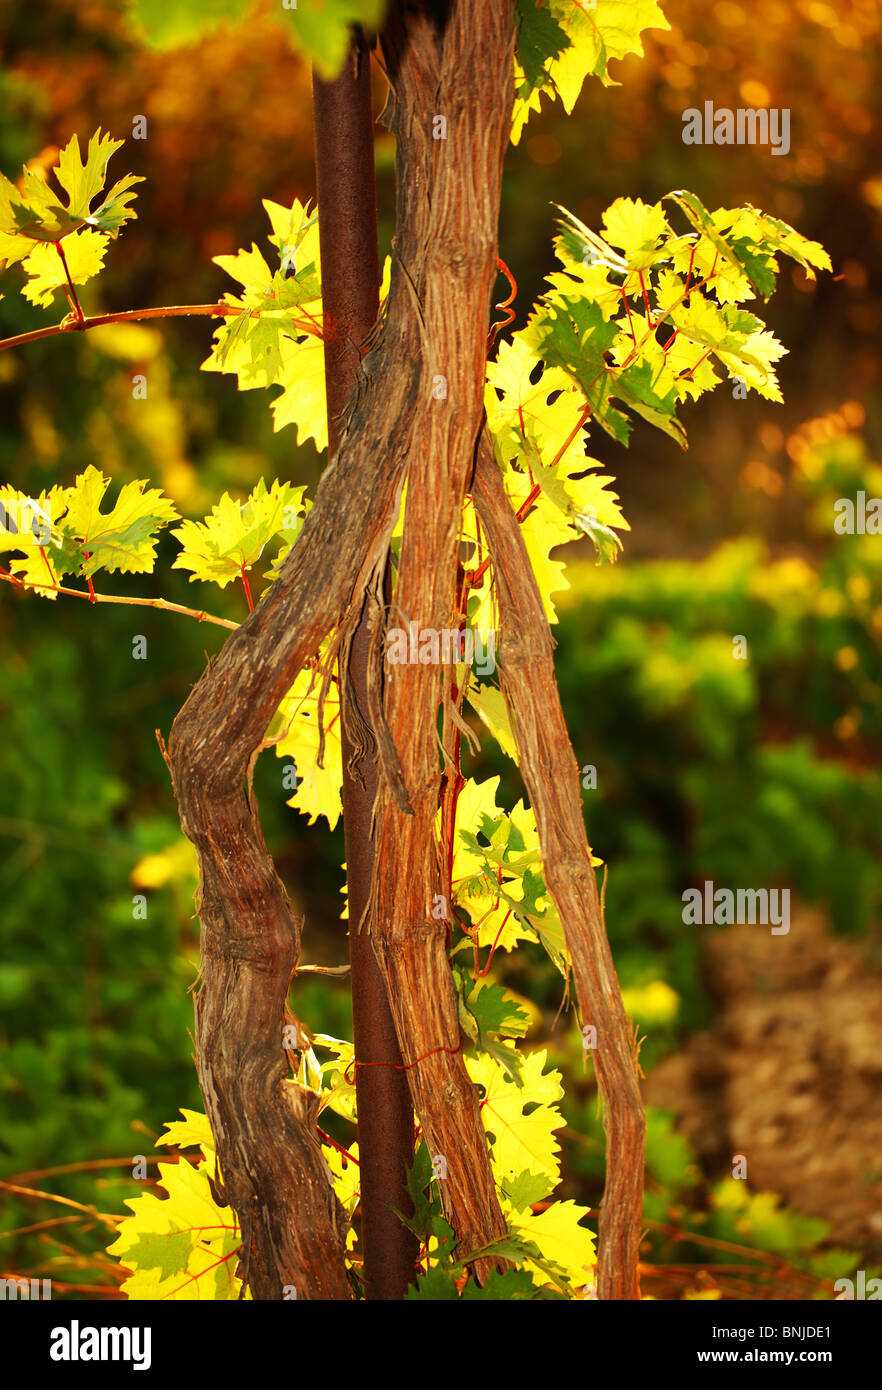 Grapevine in a garden on summer warm day Stock Photo